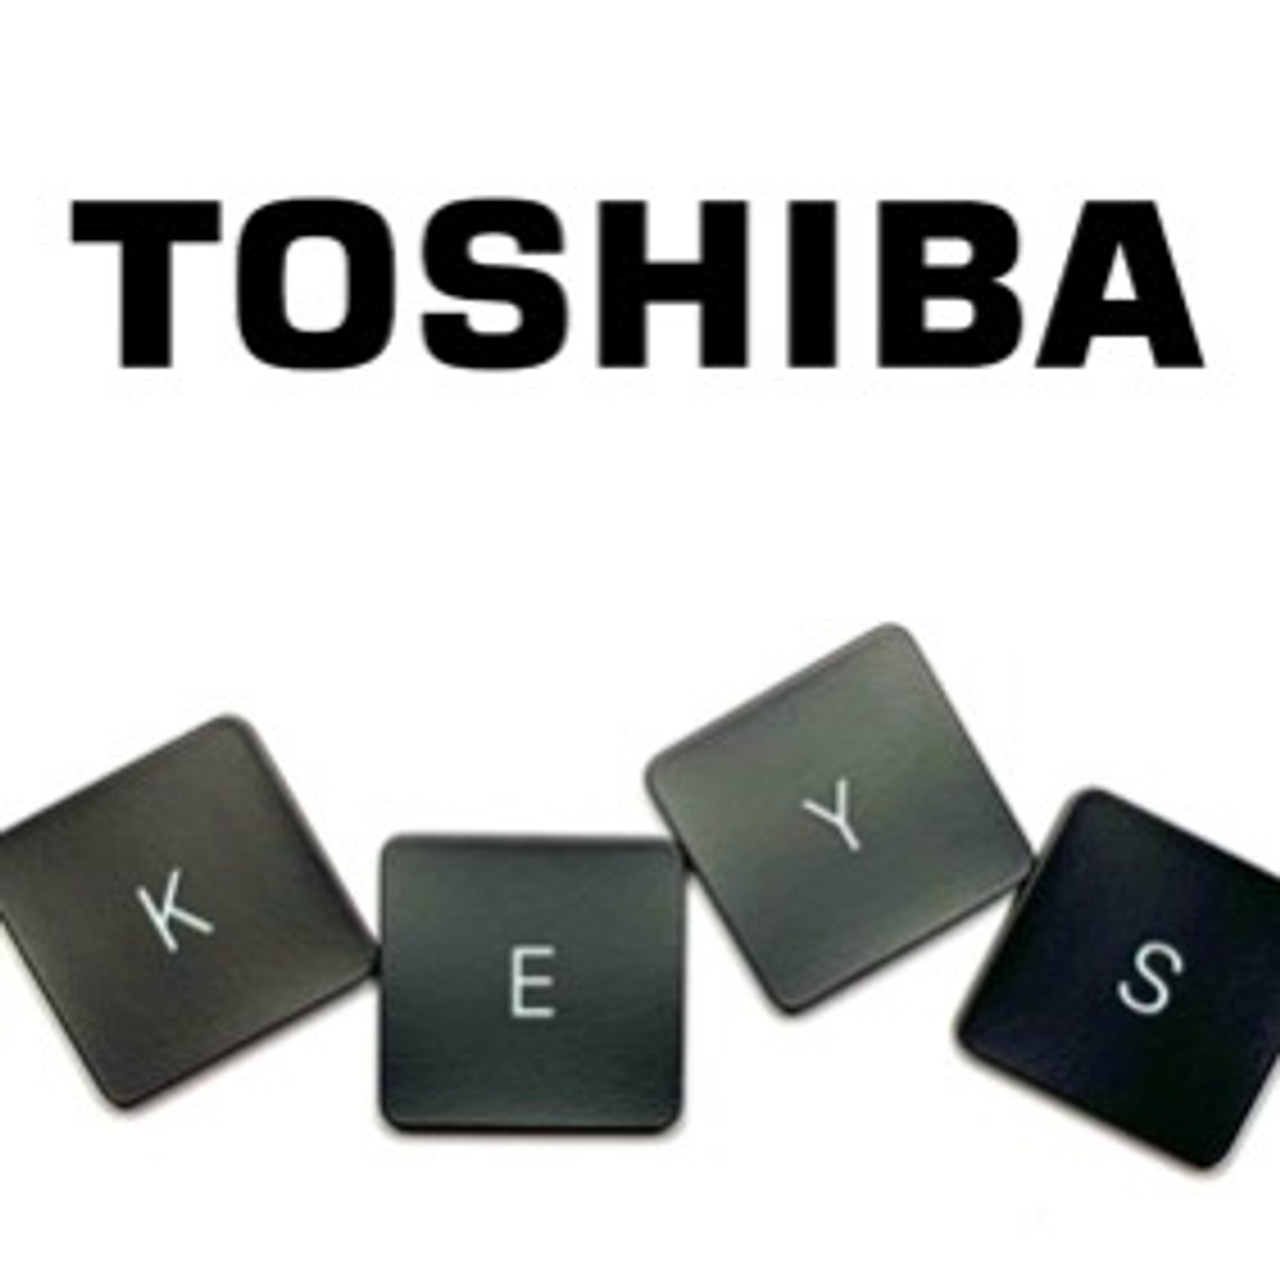 Genuine for Toshiba Satellite P205-S7469 P205-S6257 US keyboard